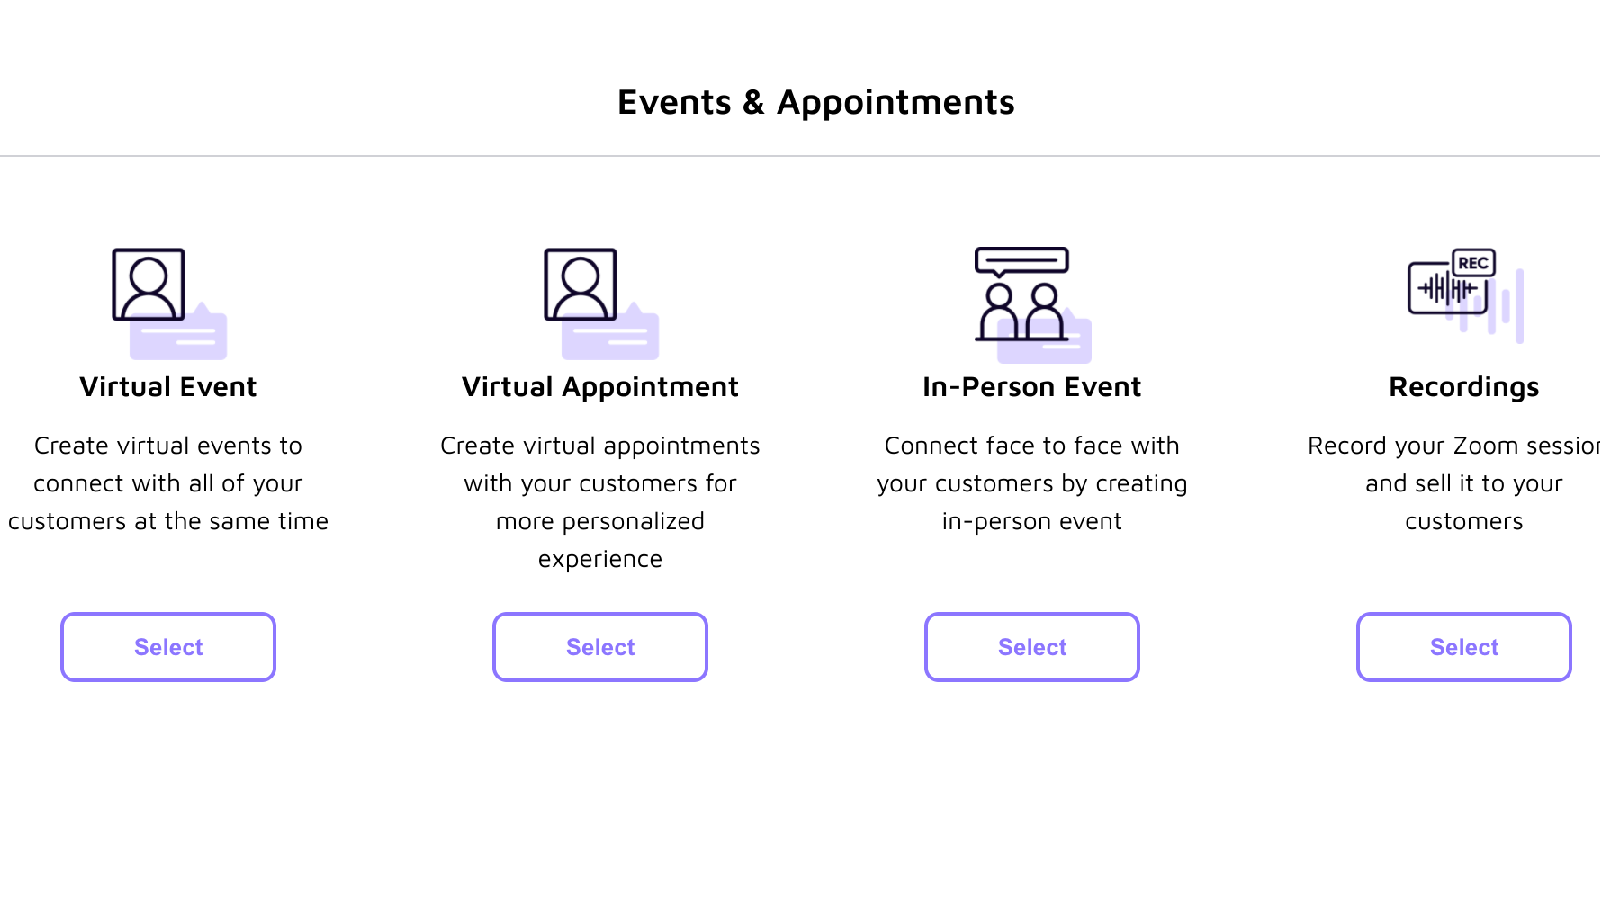 Online Events & Appointments, In-Person Events, and Recordings